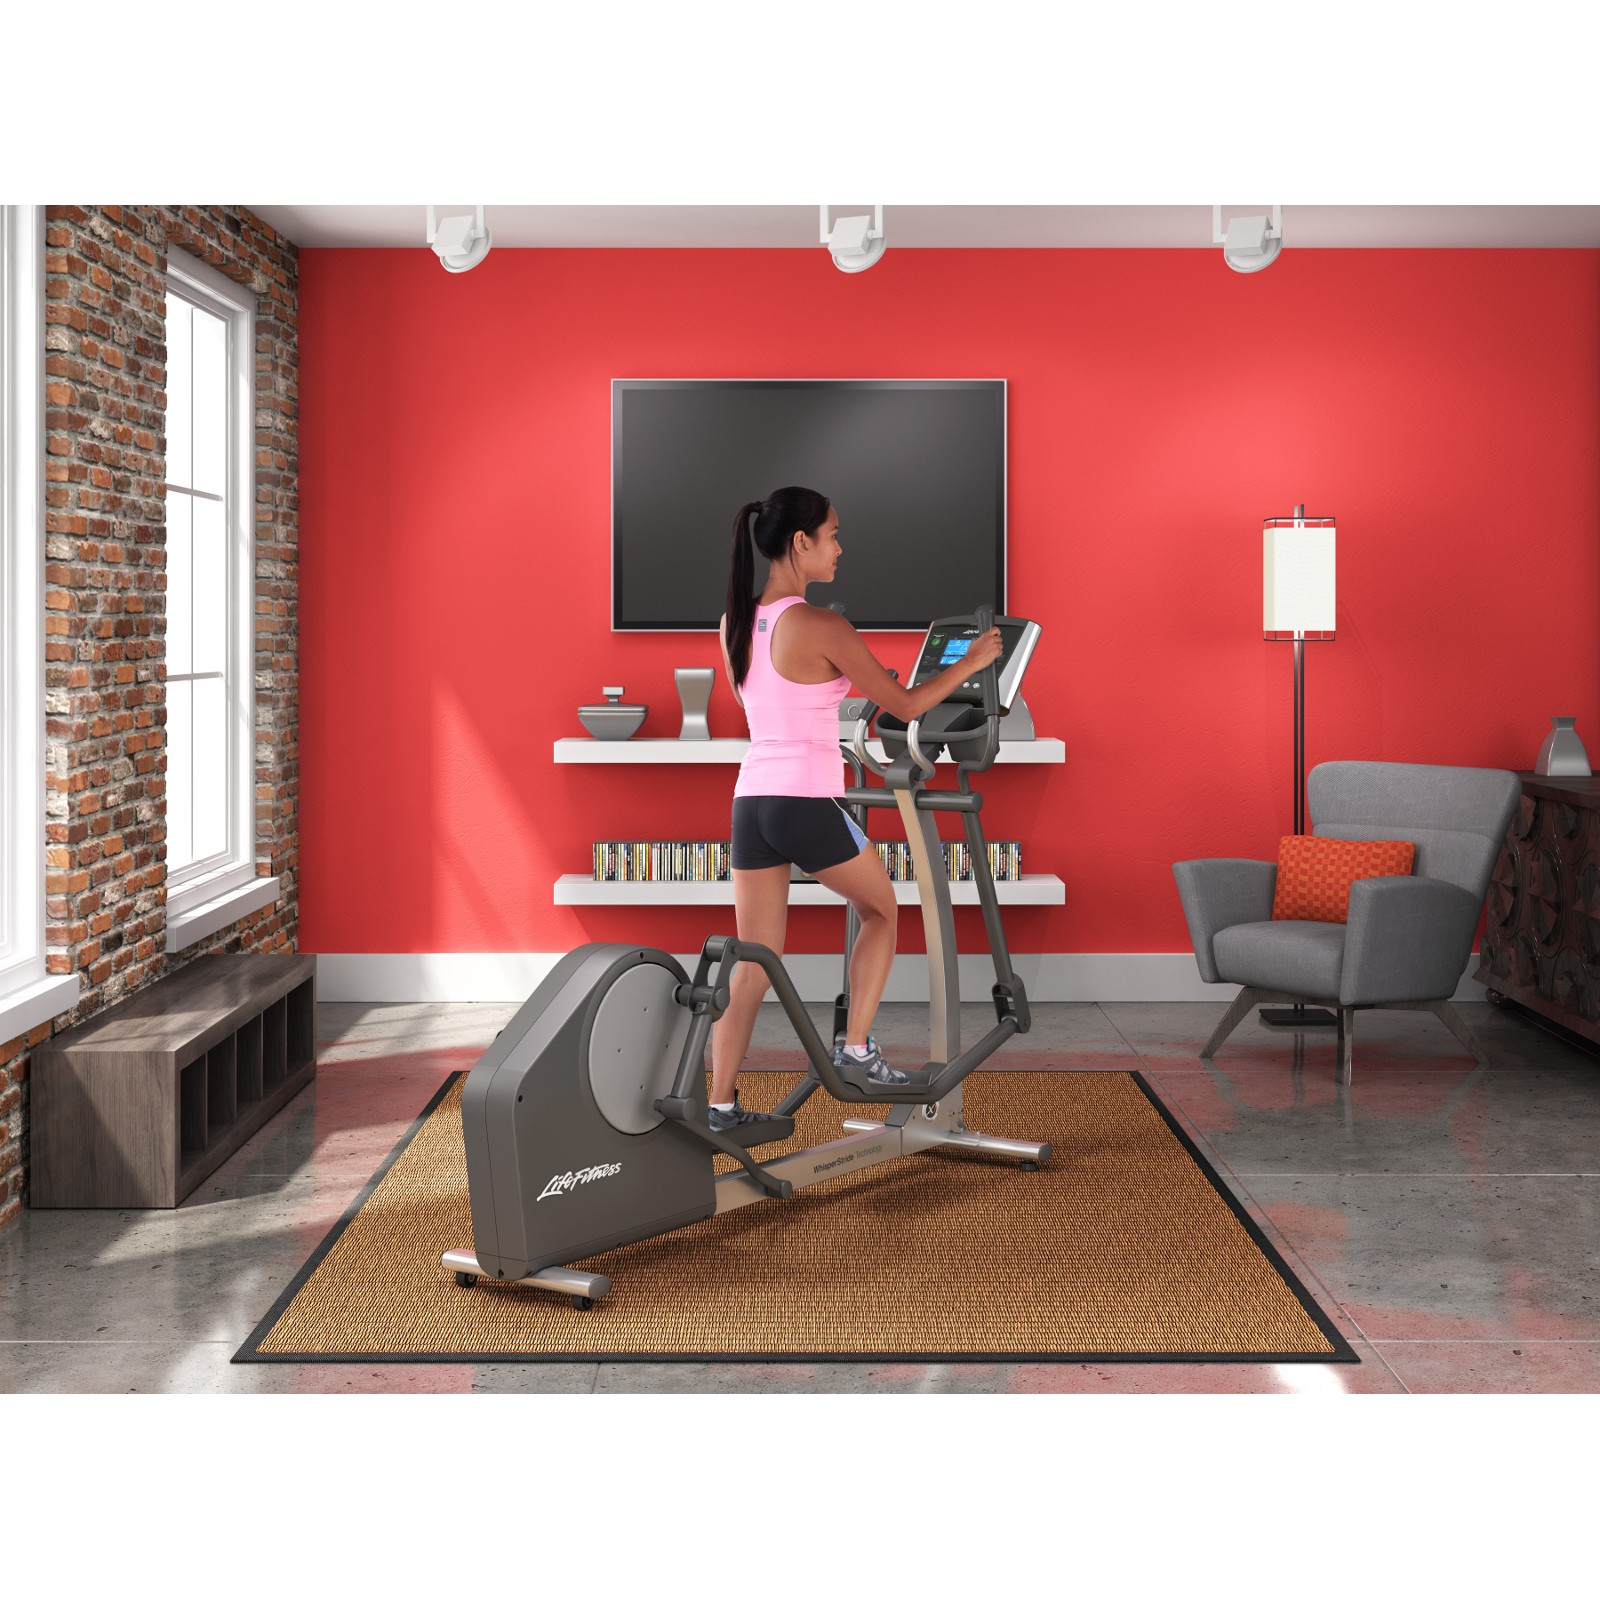 life fitness crosstrainer x1 go kaufen mit 380 kundenbewertungen sport tiedje. Black Bedroom Furniture Sets. Home Design Ideas